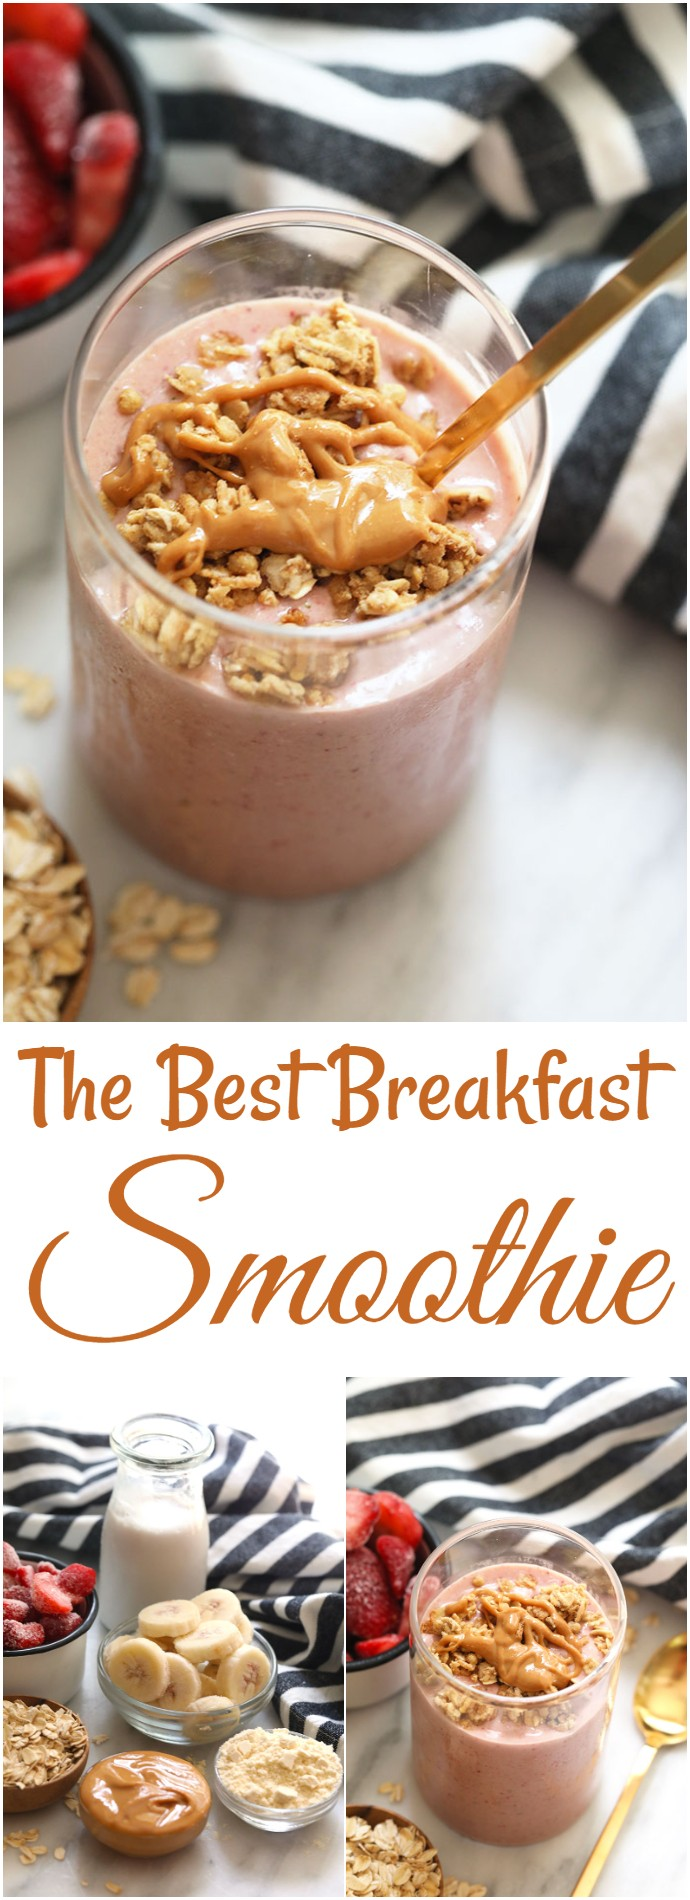 The Best Breakfast Smoothie